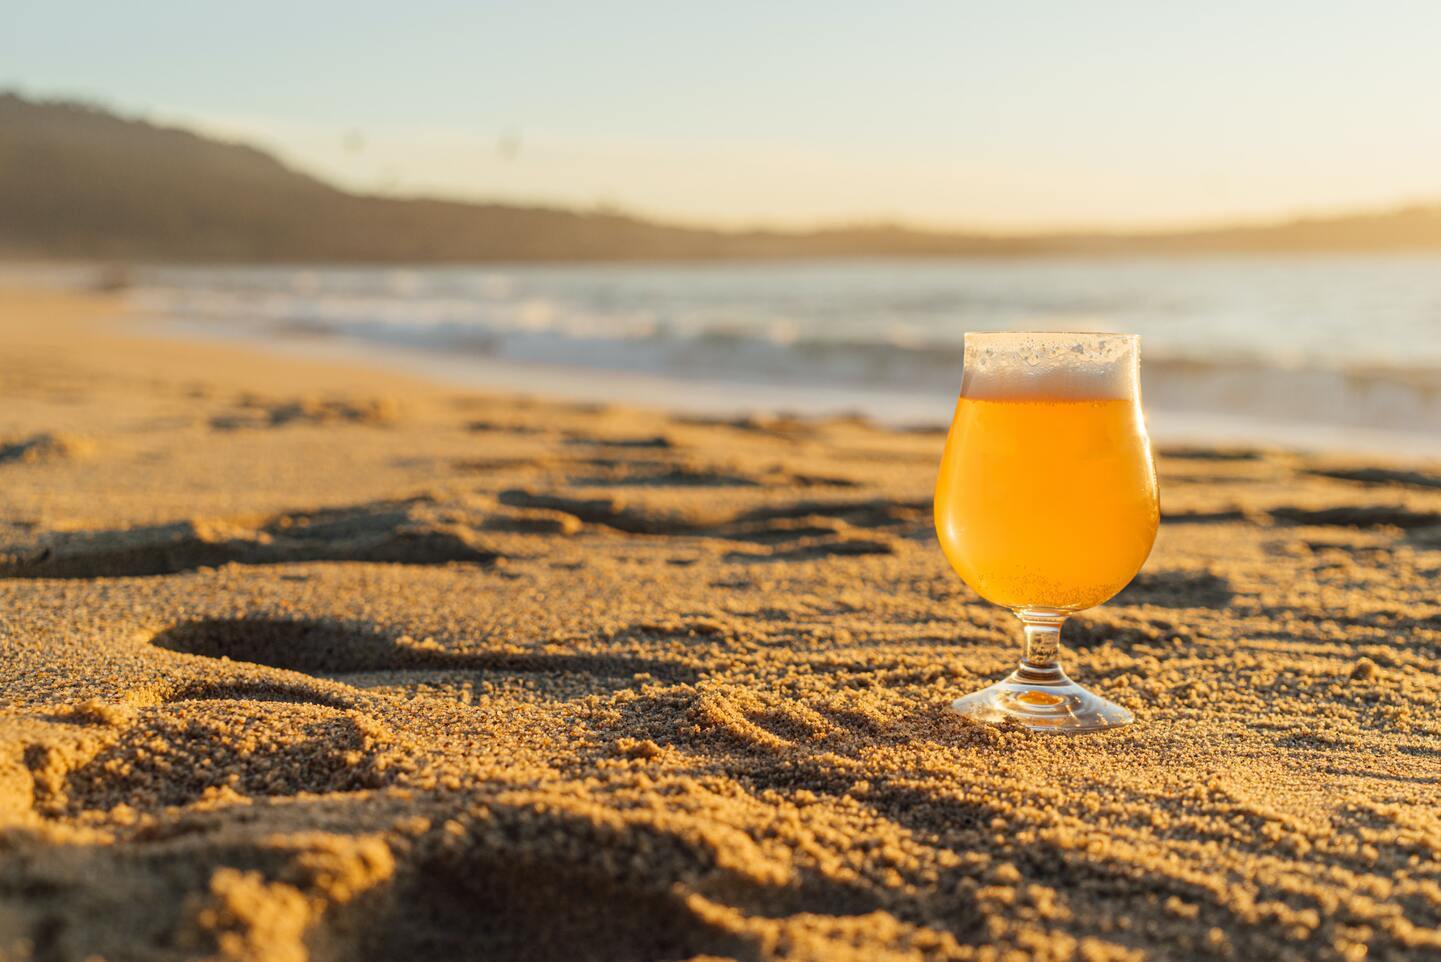 A glass of fruit beer on the beach